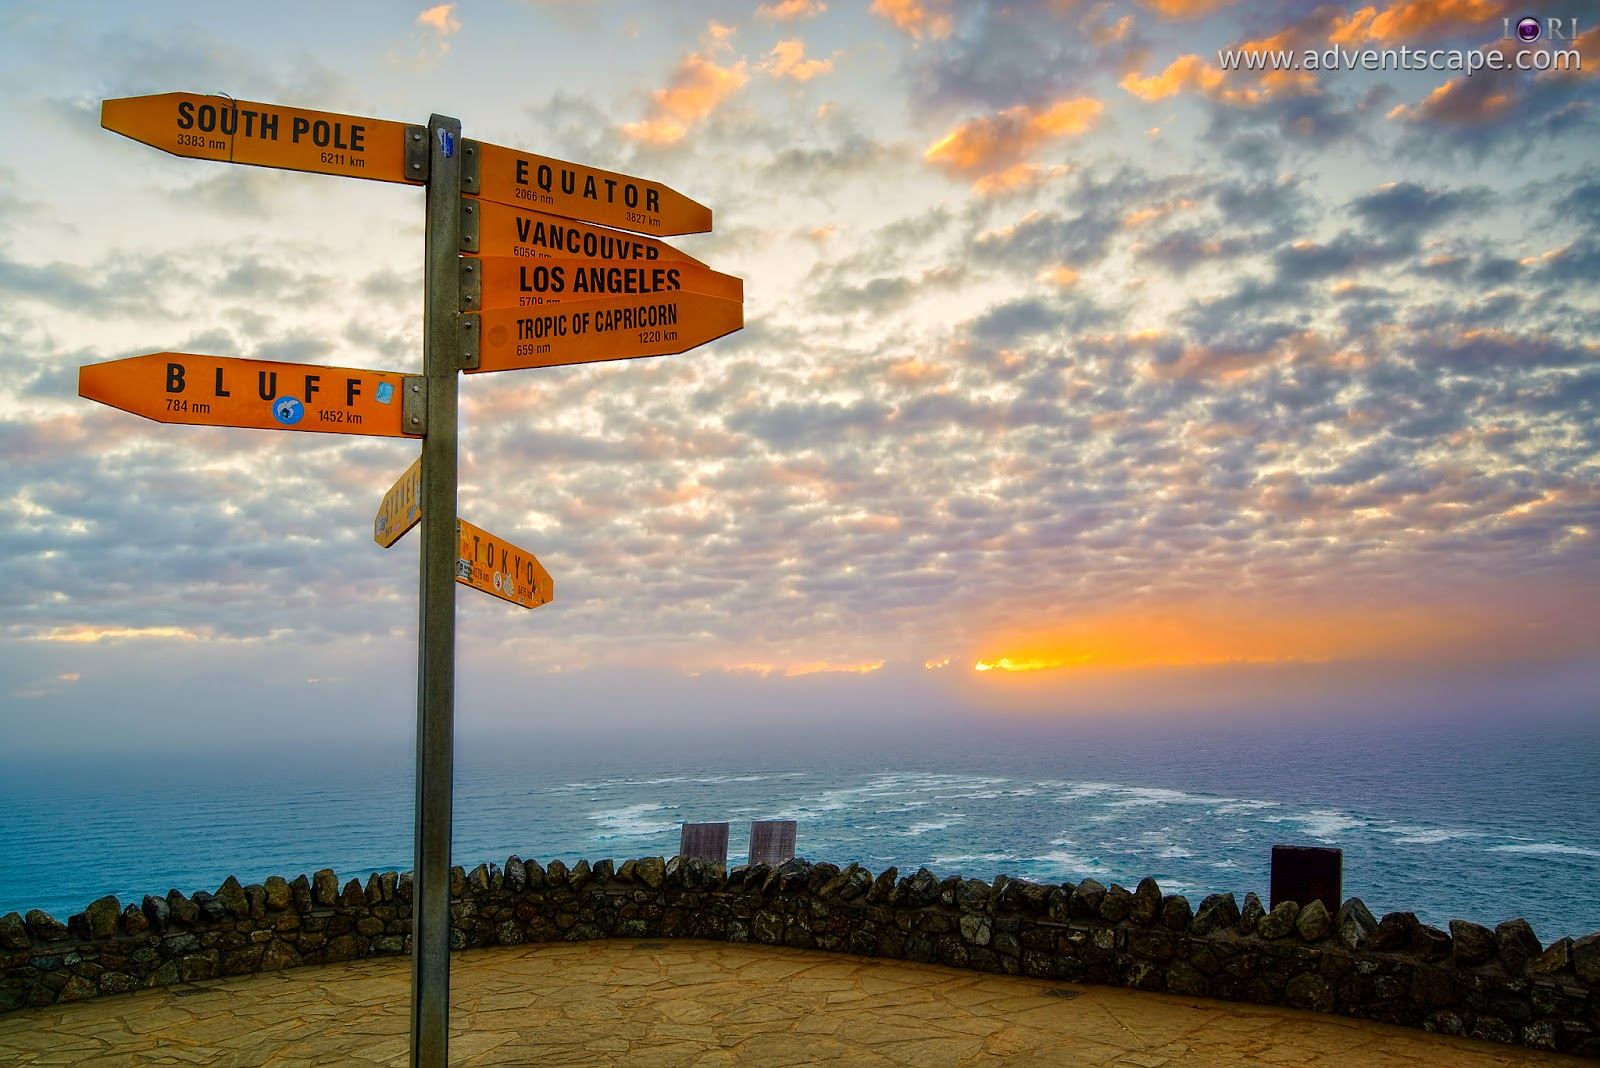 Philip Avellana, iori, adventscape, Cape Reinga, NZ, New Zealand, Te Paki, national park, lighthouse, landscape, seascape, sunset, north island, directions, famous places